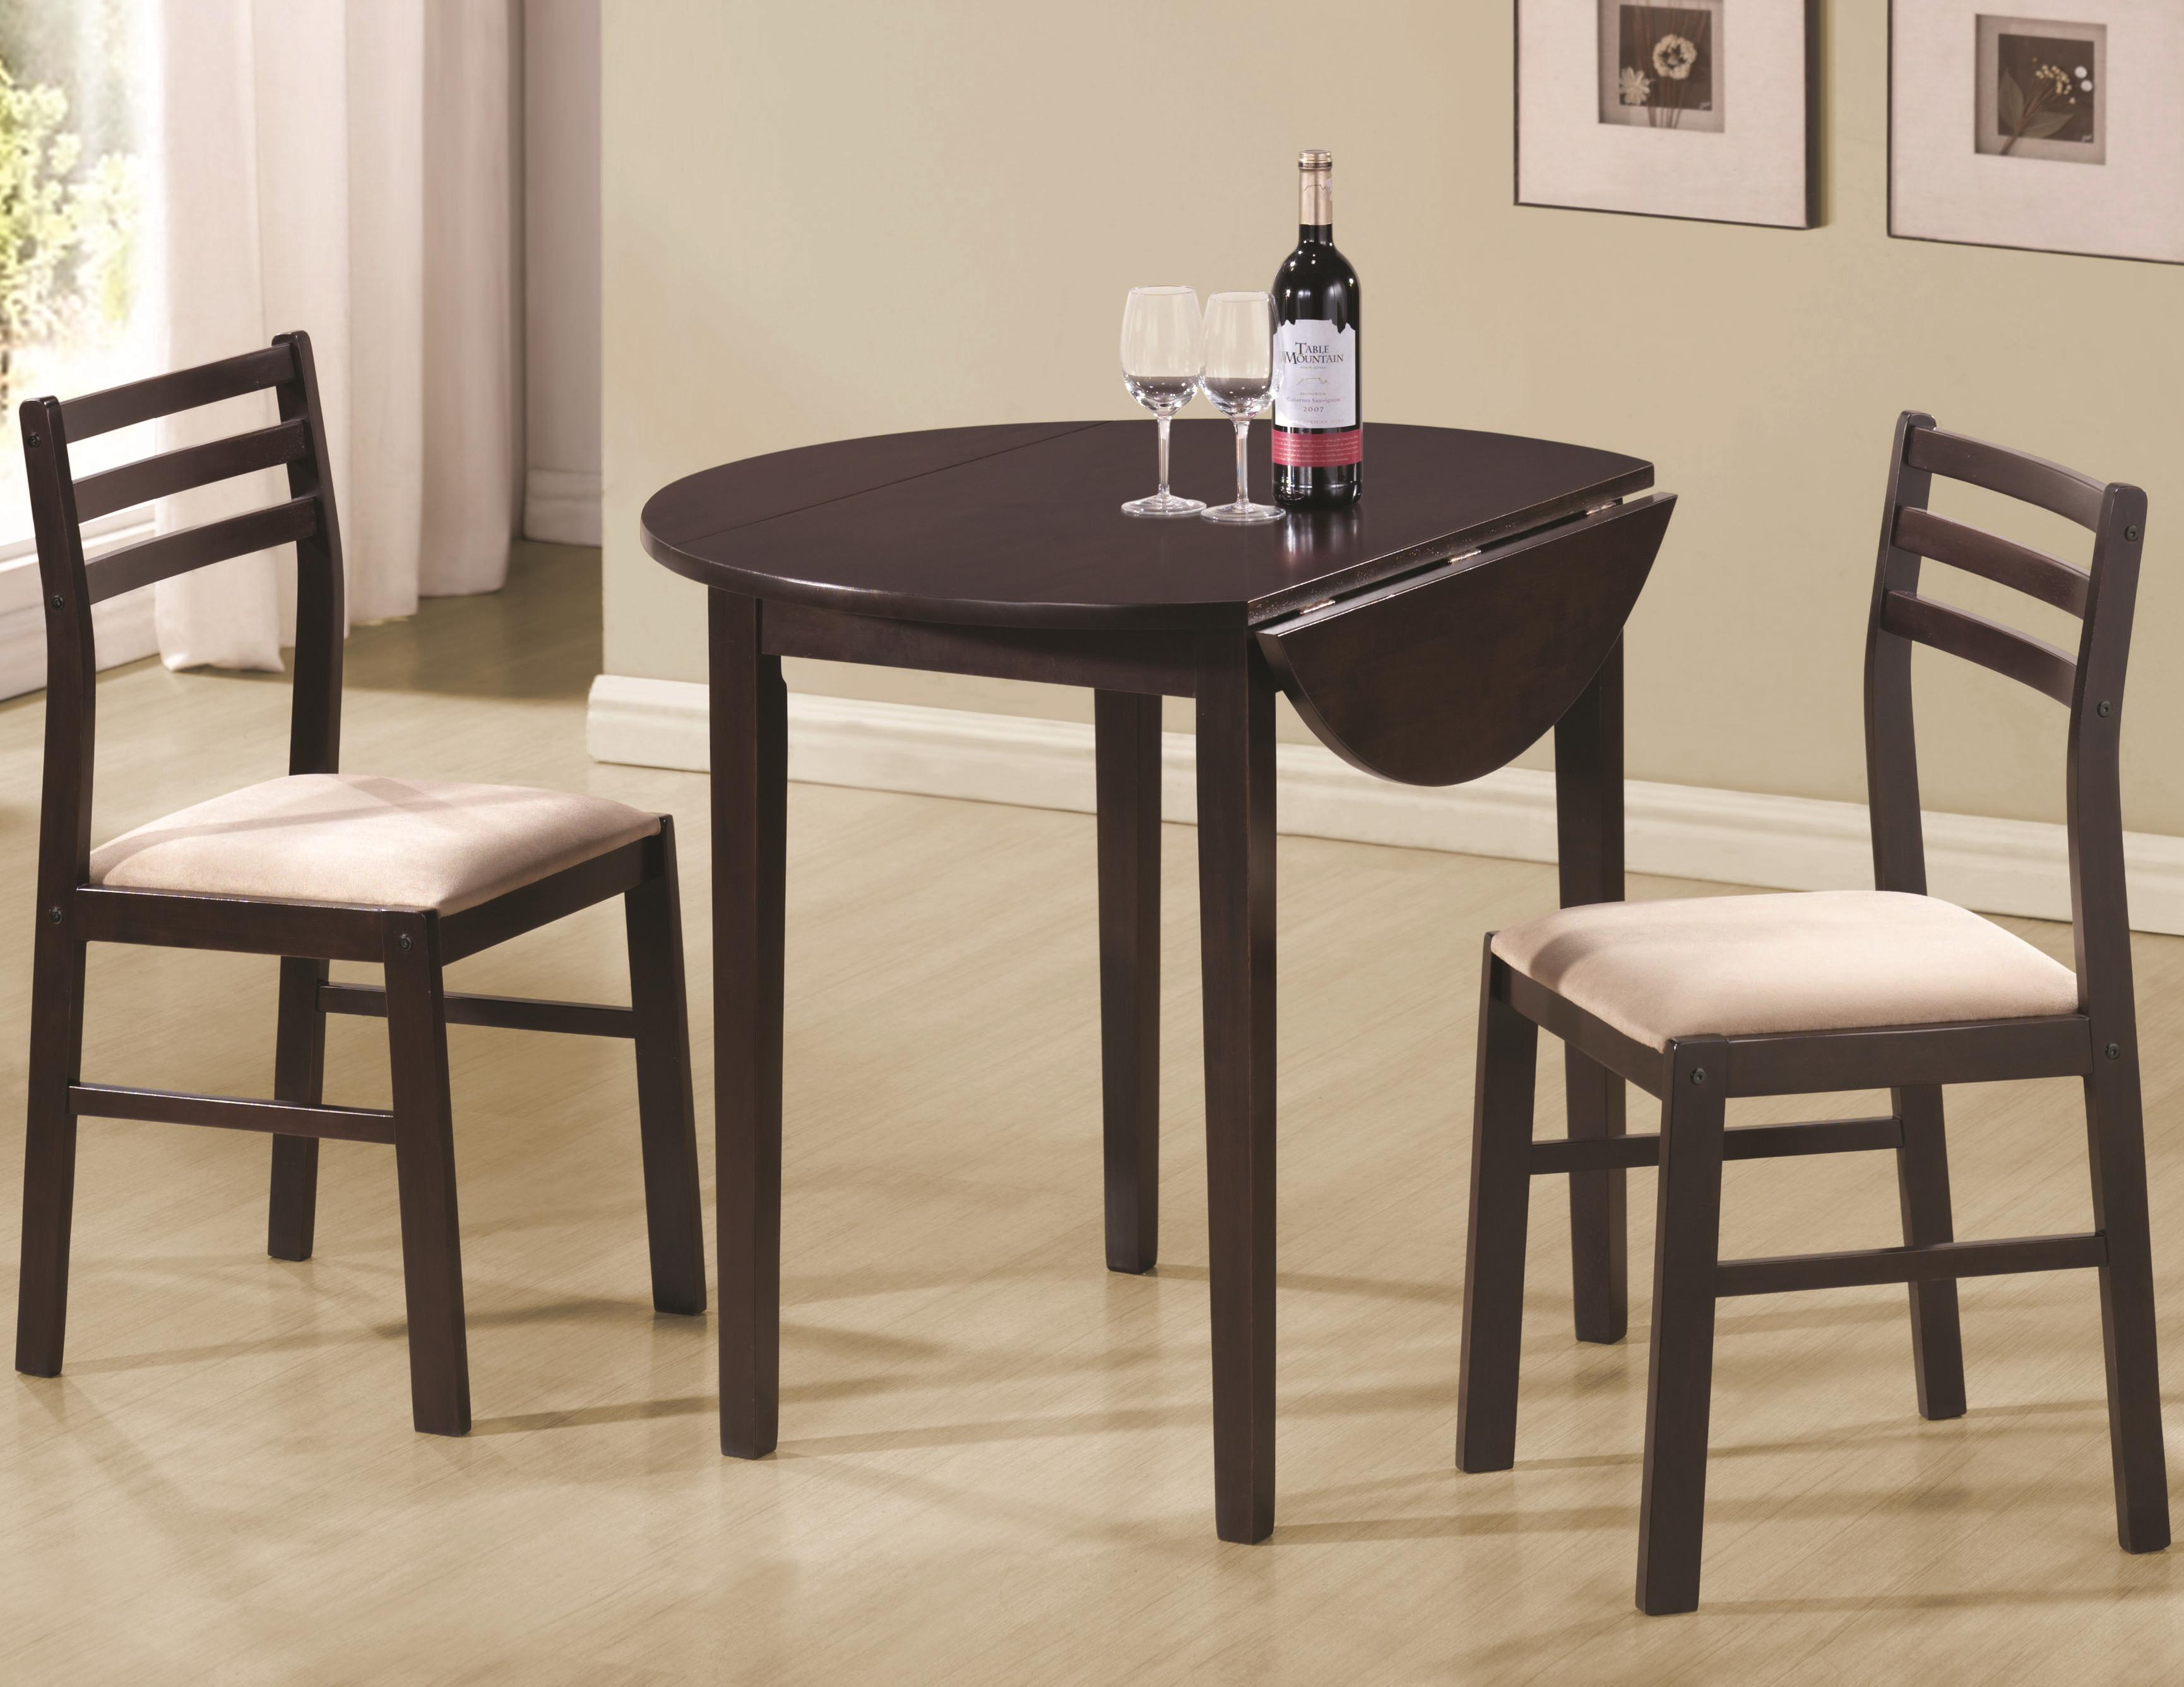 Coaster Dinettes 3 Piece Table & Chair Set - Item Number: 130005